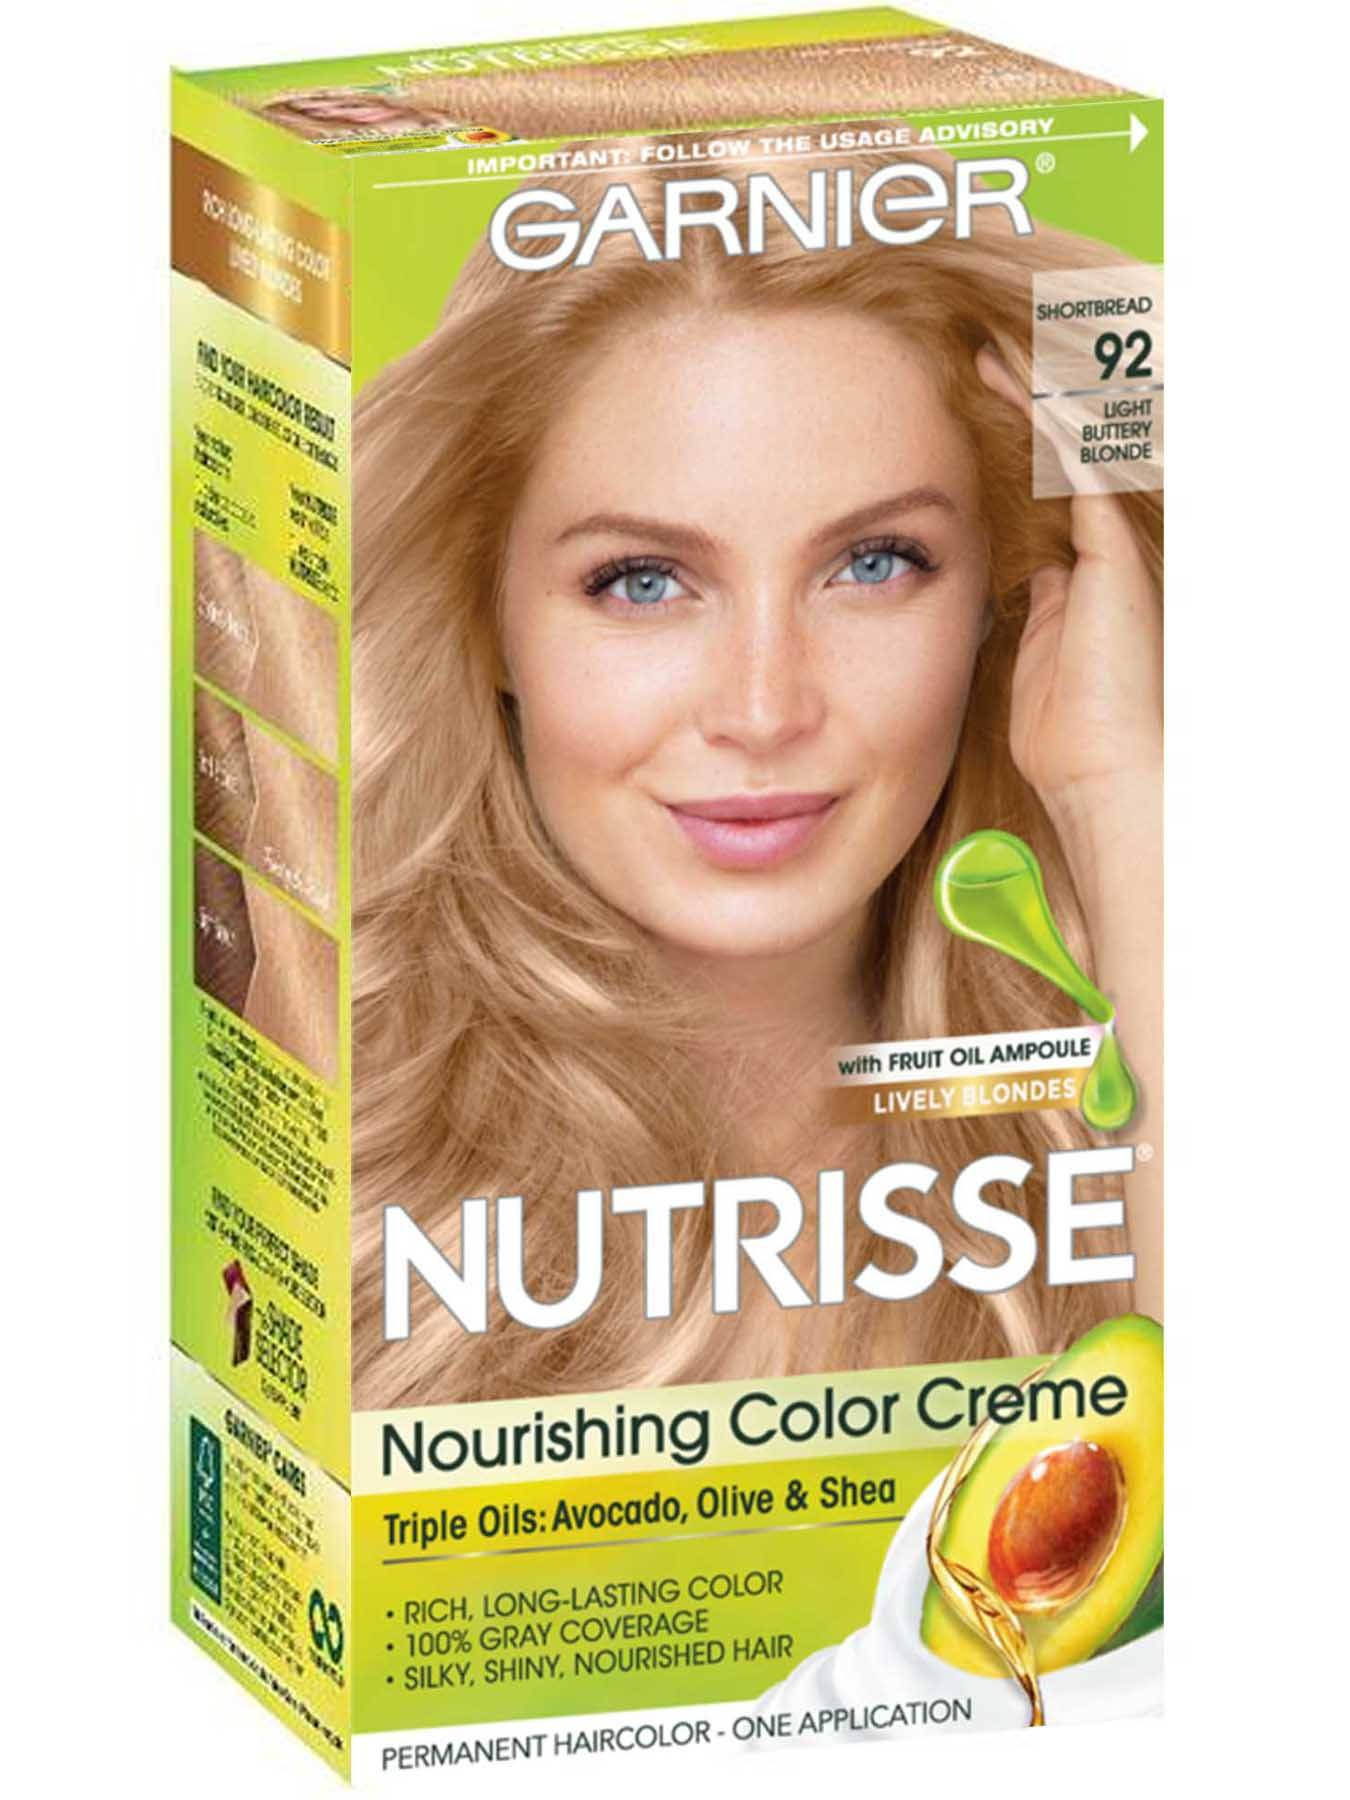 Nutrisse Color Creme - Light Buttery Blonde Hair Color - Garnier